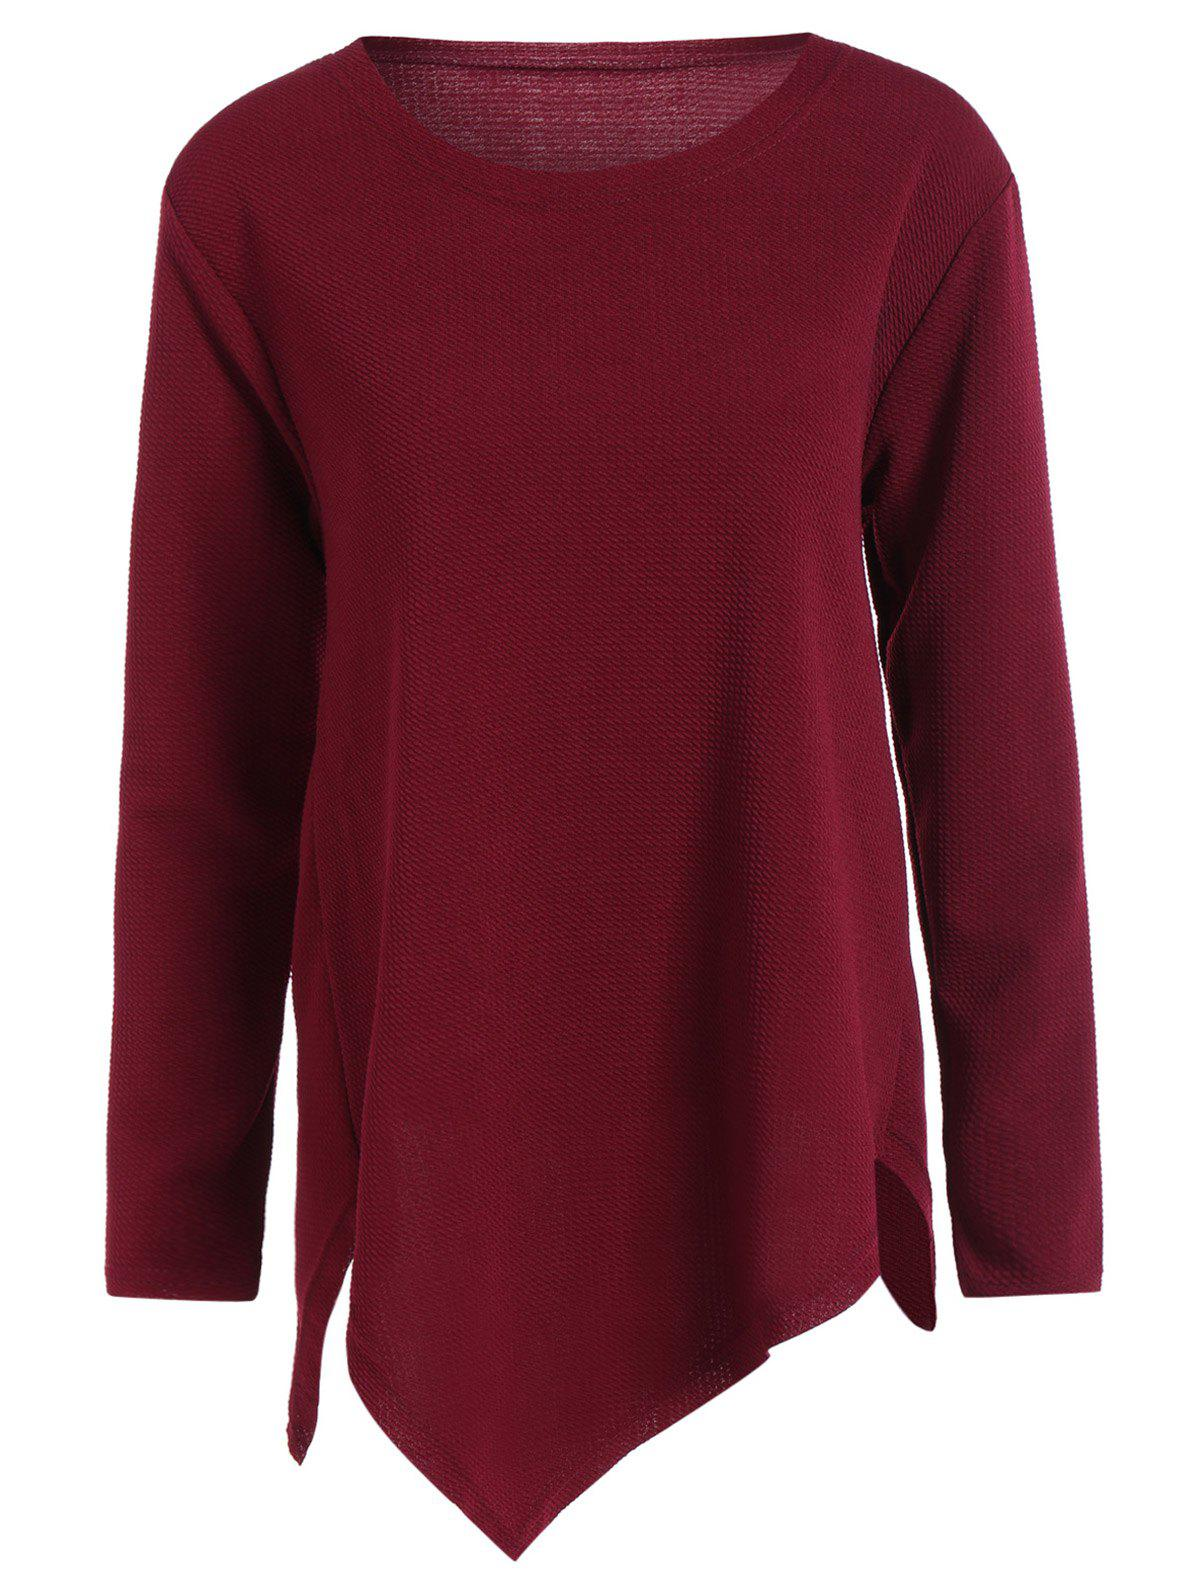 Plus Size Long Sleeve Handkerchief Top - WINE RED 3XL